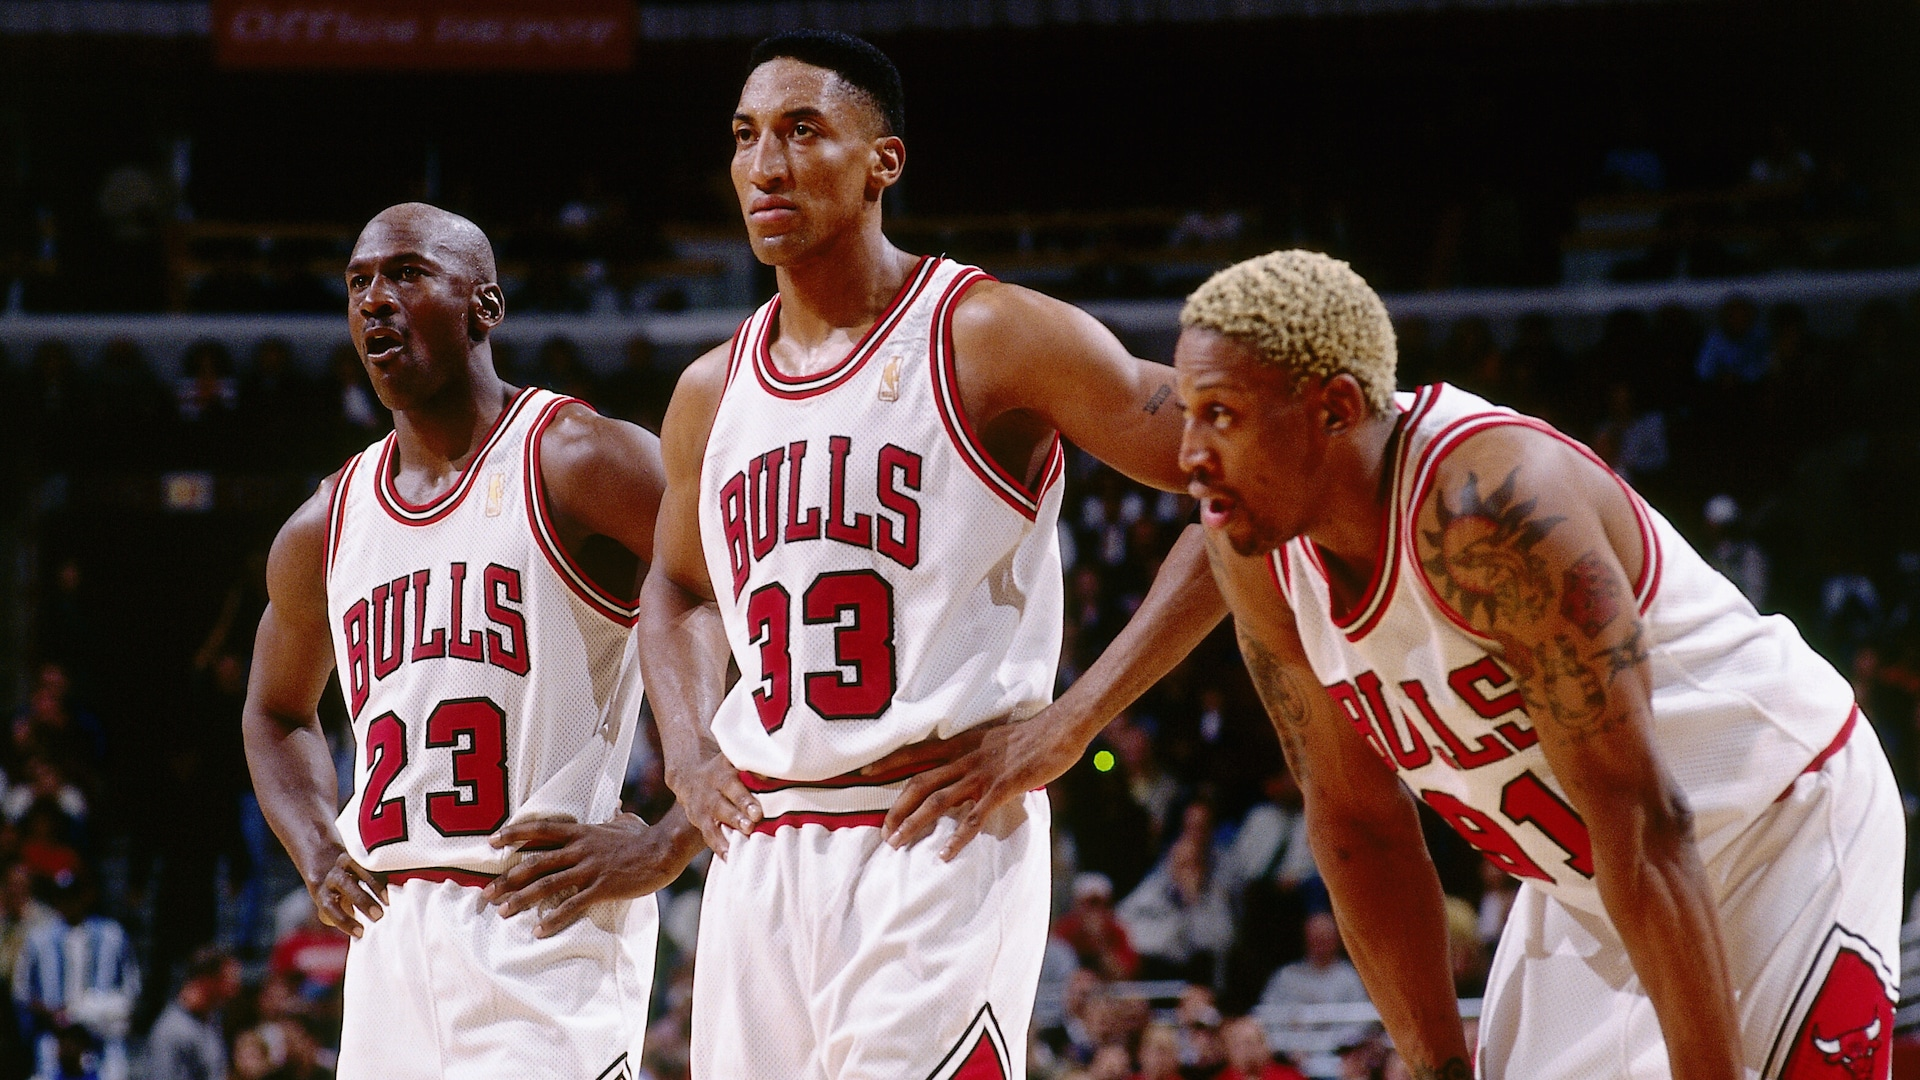 Top Moments: Chicago Bulls set NBA record with 72-win season | NBA.com